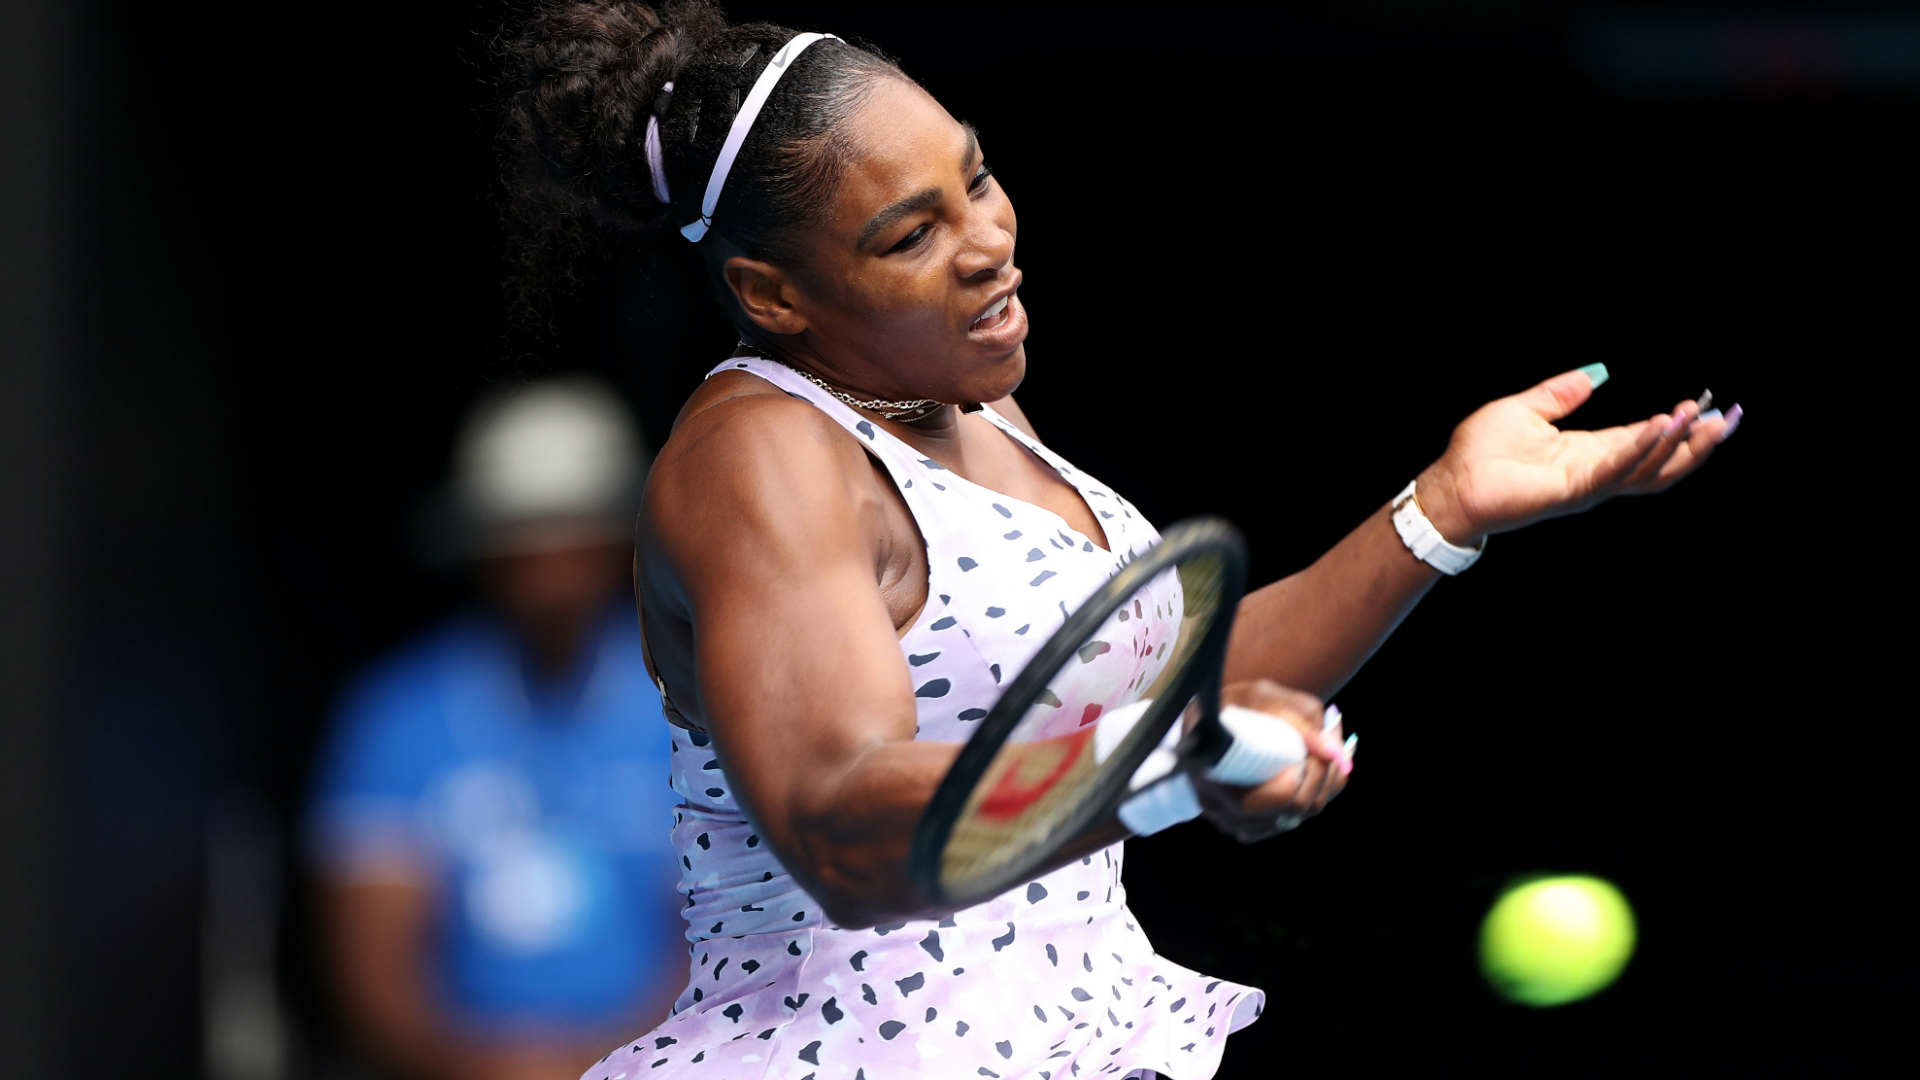 Australian Open 2020: Serena Williams results and form ahead of second-round match with Tamara Zidansek